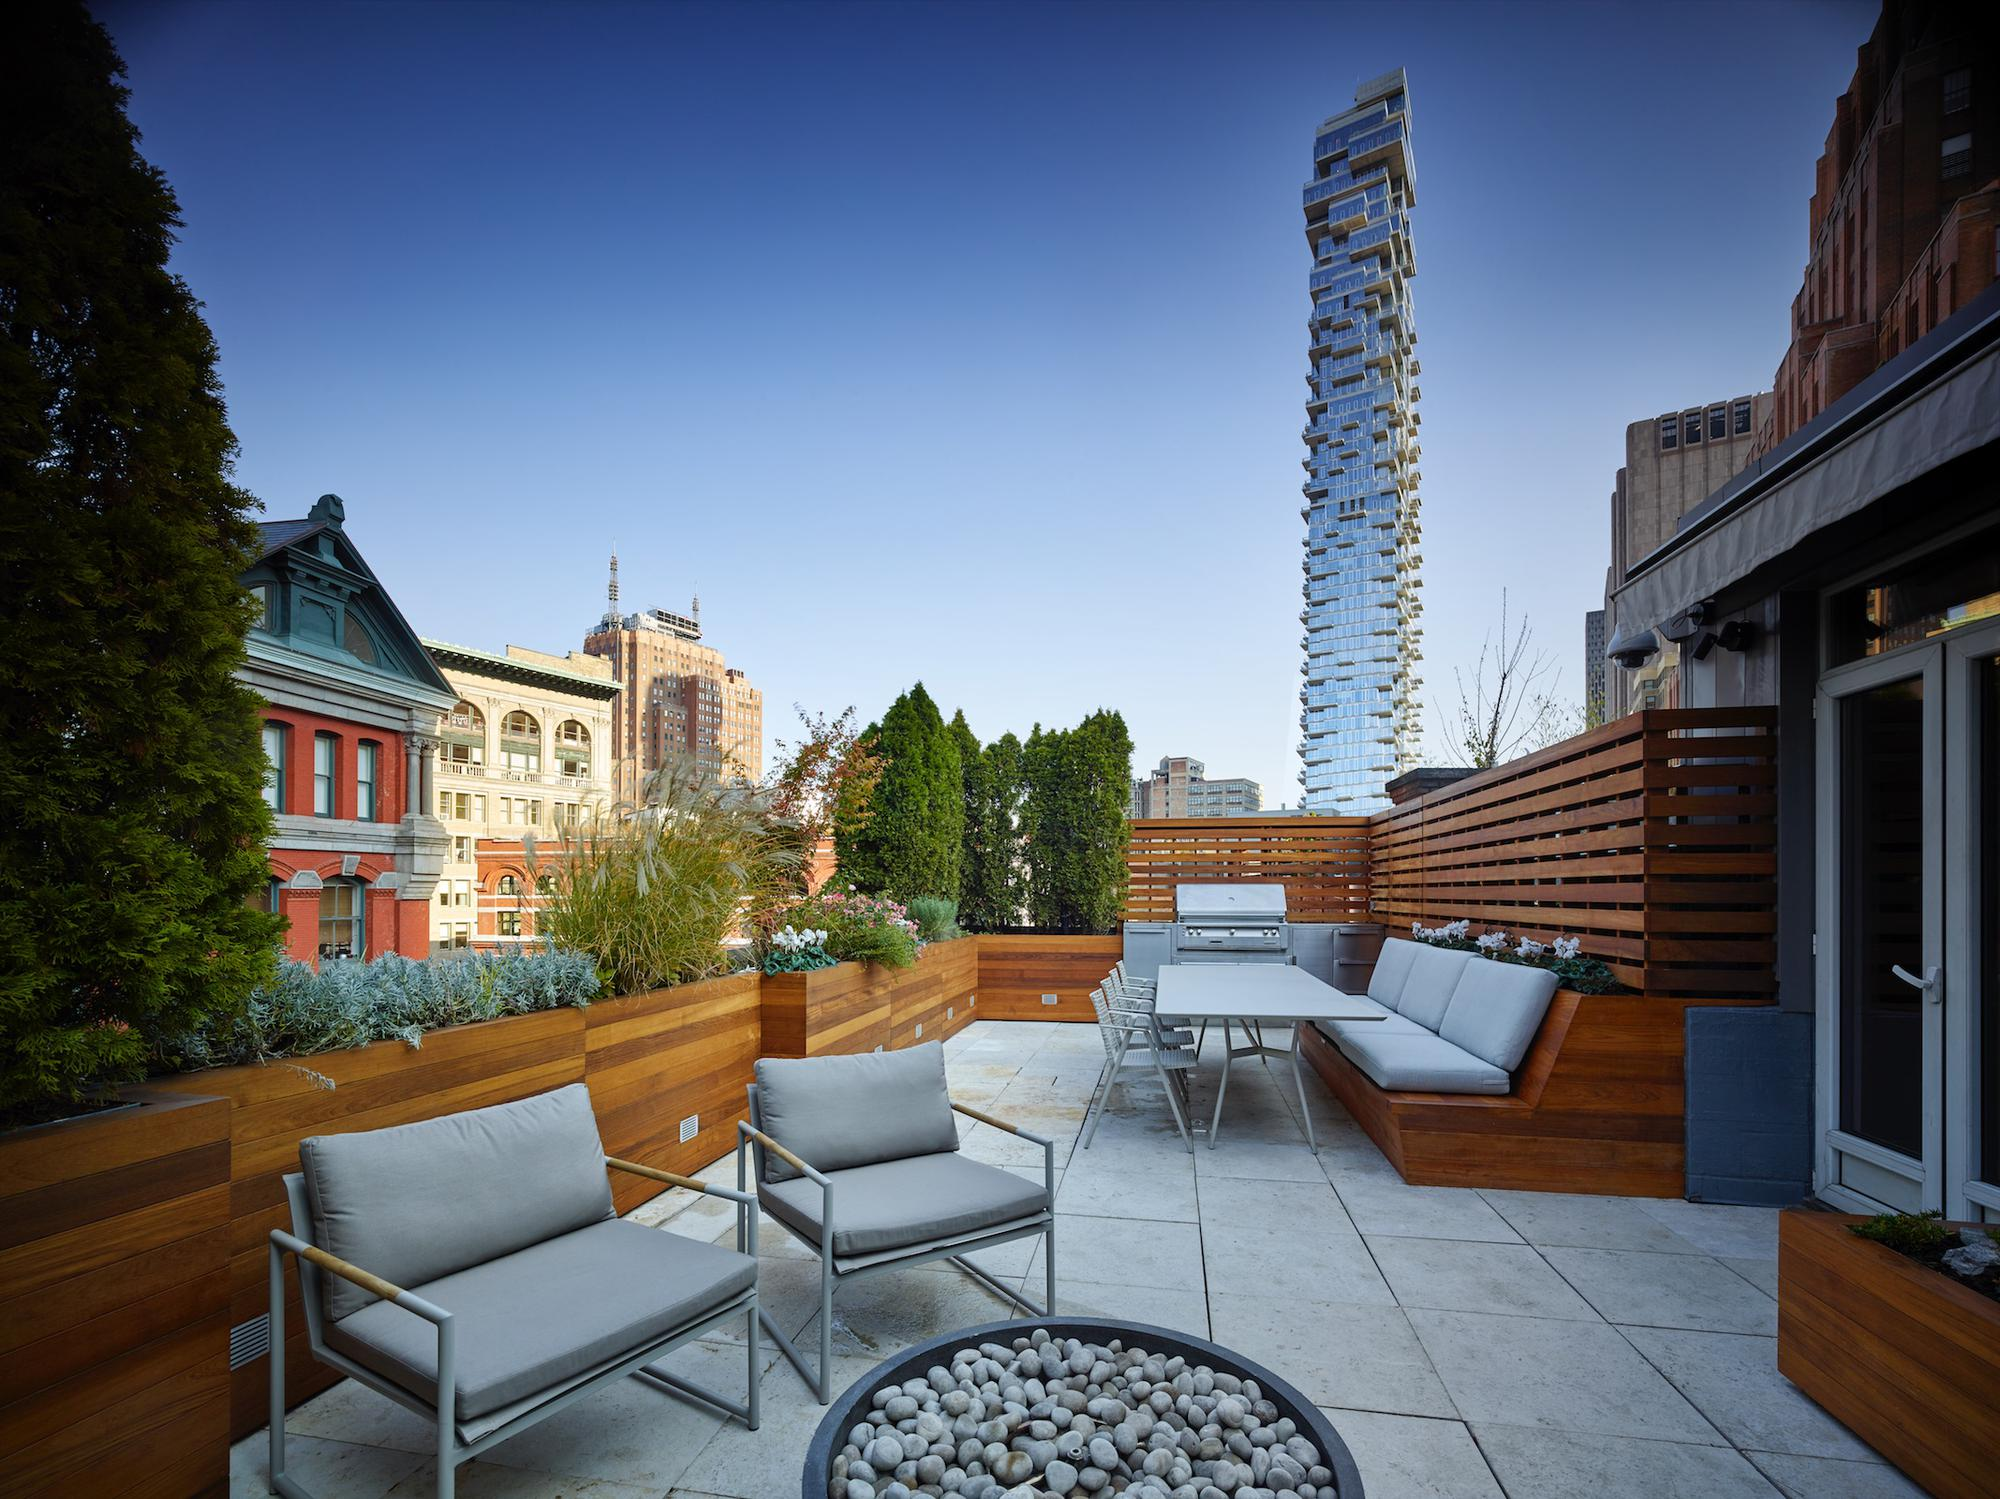 TRIBECA ROOFSCAPE _ NYC